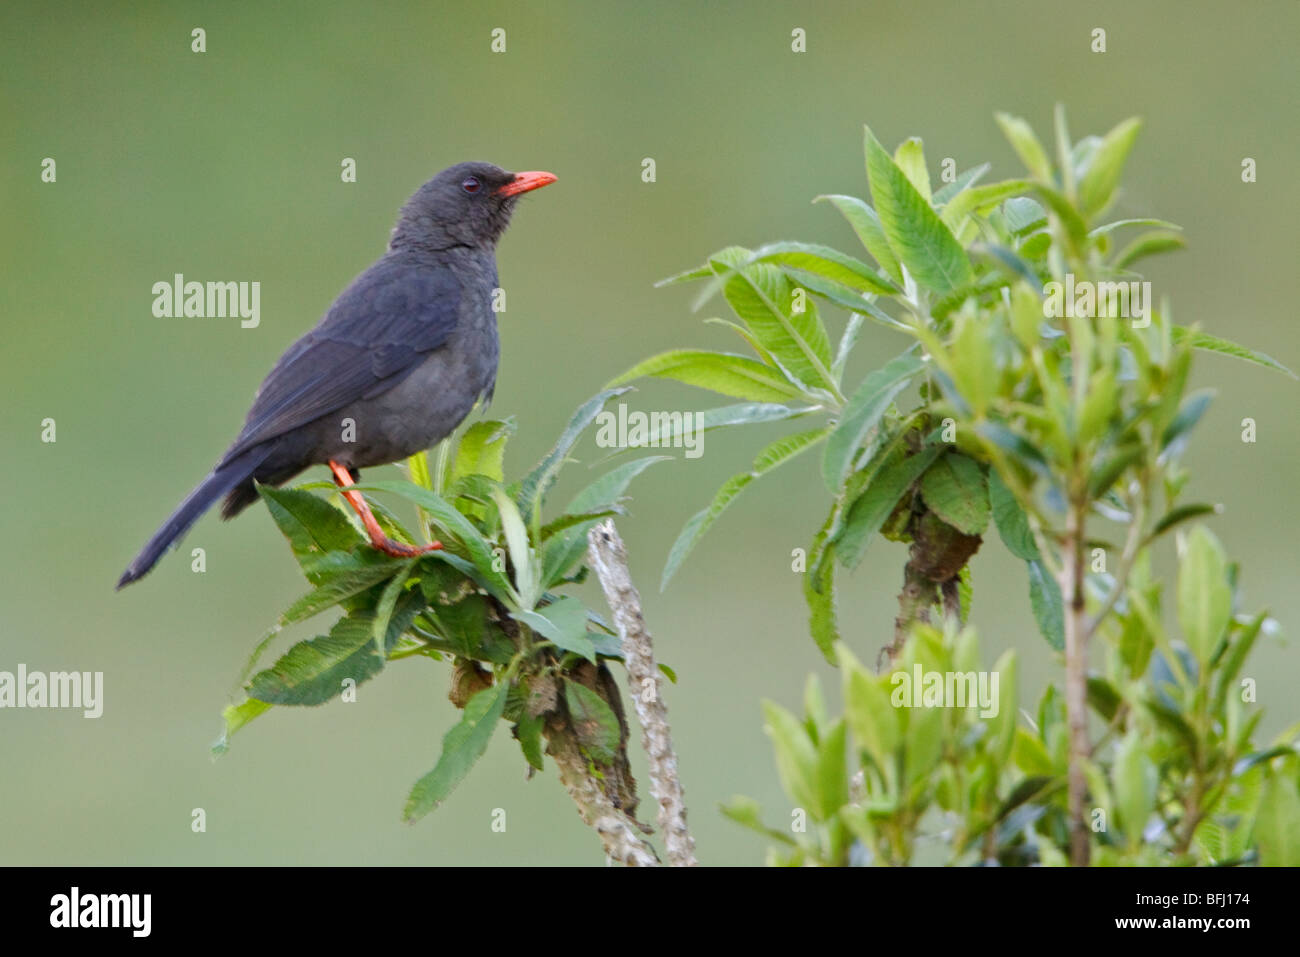 Great Thrush (Turdus fuscater) perched on a branch at the Yanacocha reserve in central Ecuador. - Stock Image